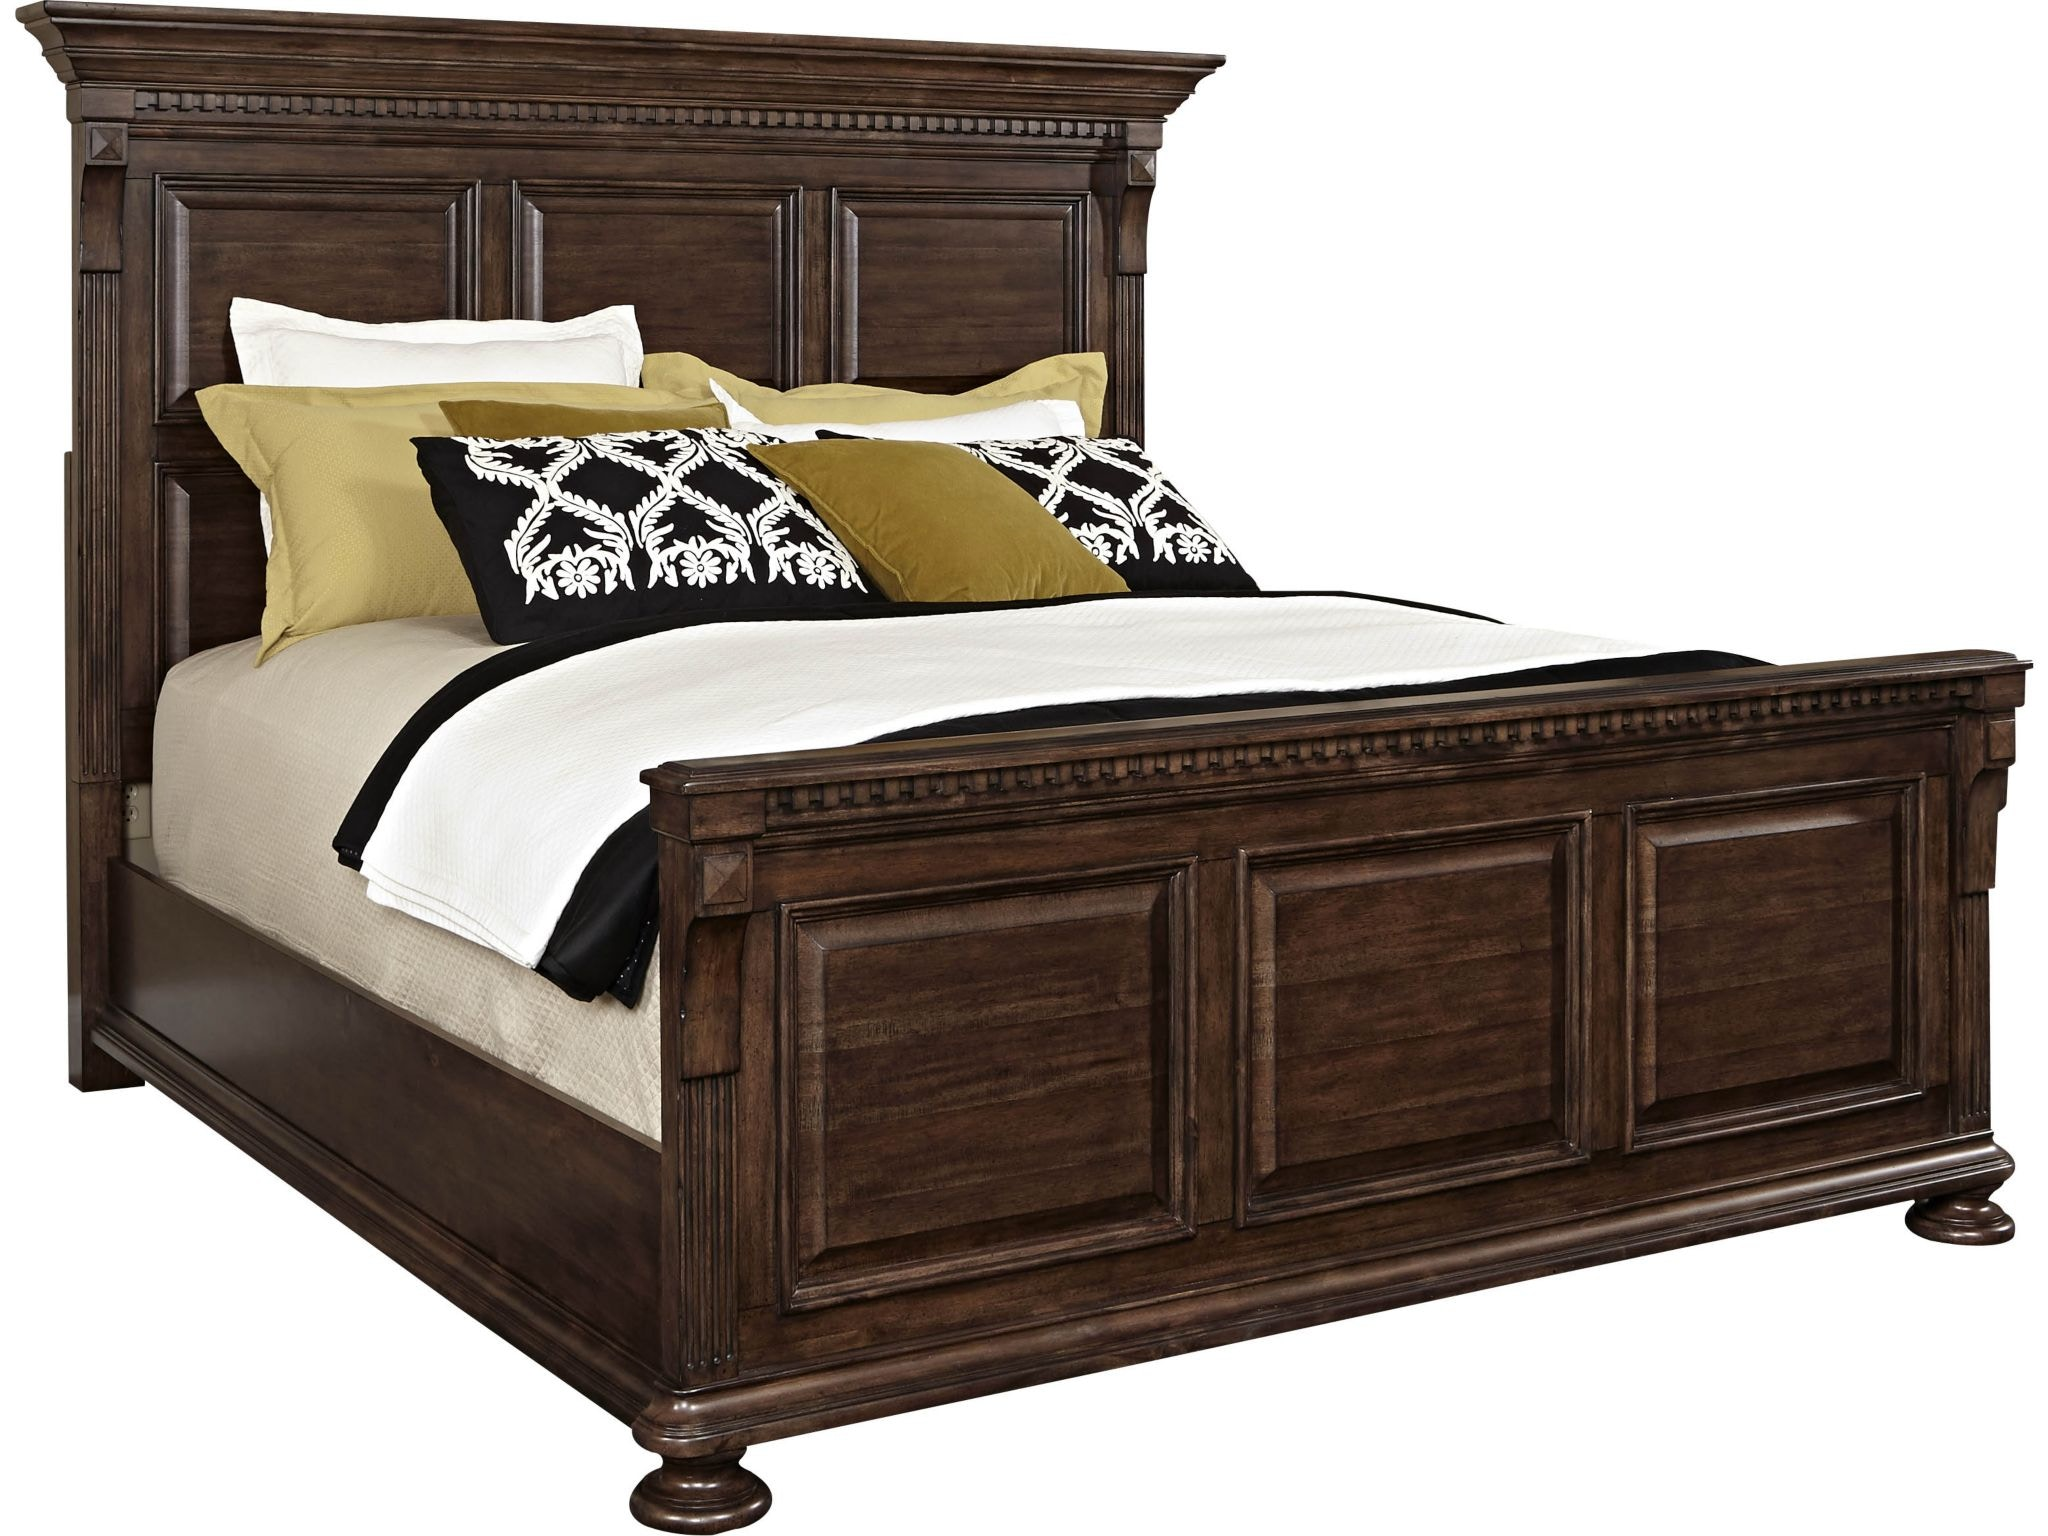 Broyhill Bedroom Lylau2122 Panel Bed 4912 PANEL BED - Great Deals on Furniture - Martinez, GA